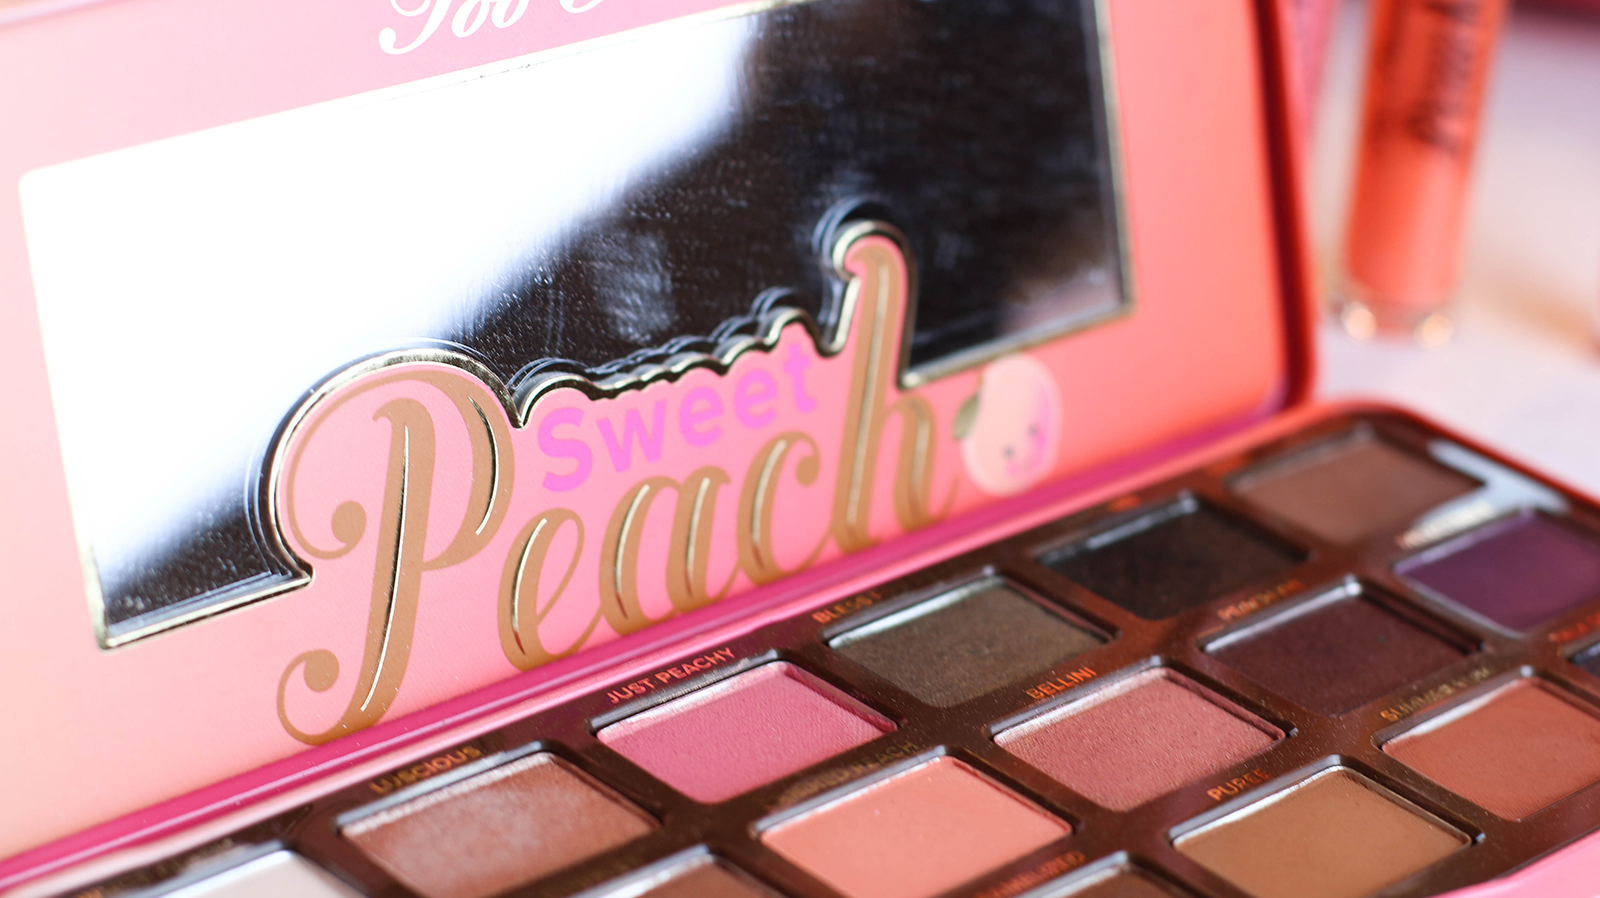 SWEET_PEACH_TOOFACED_AVIS_4